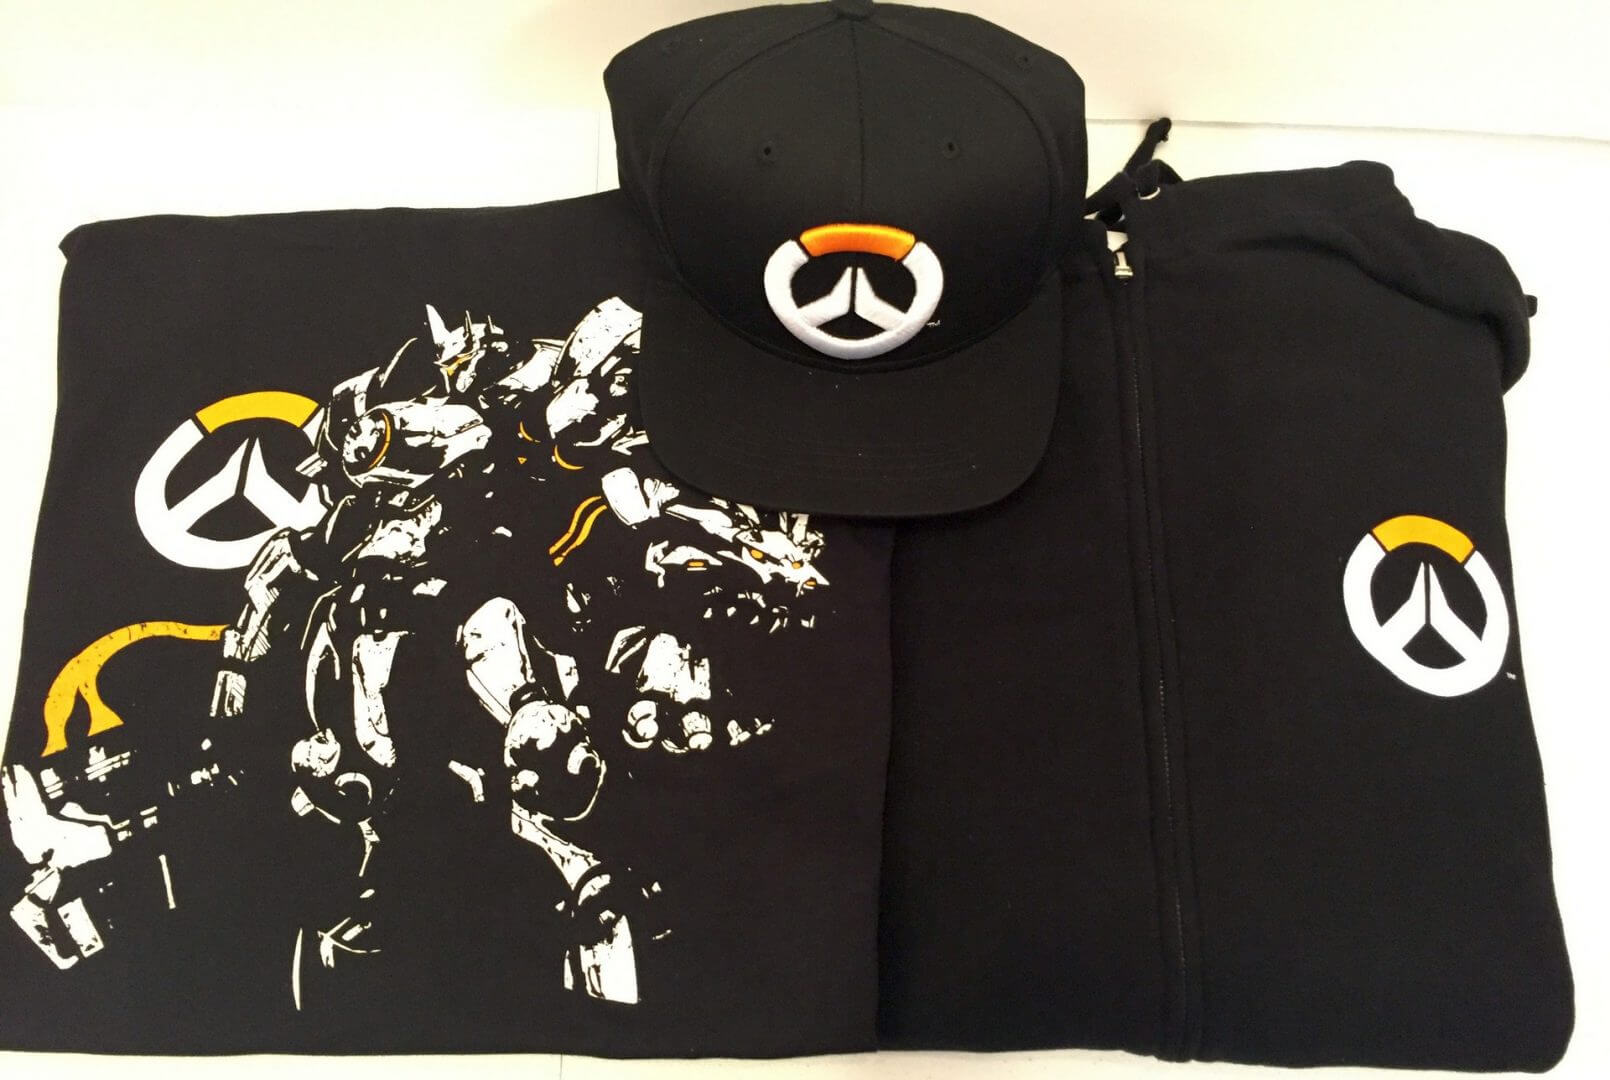 J!NX: Overwatch Apparel and Accessories - Review